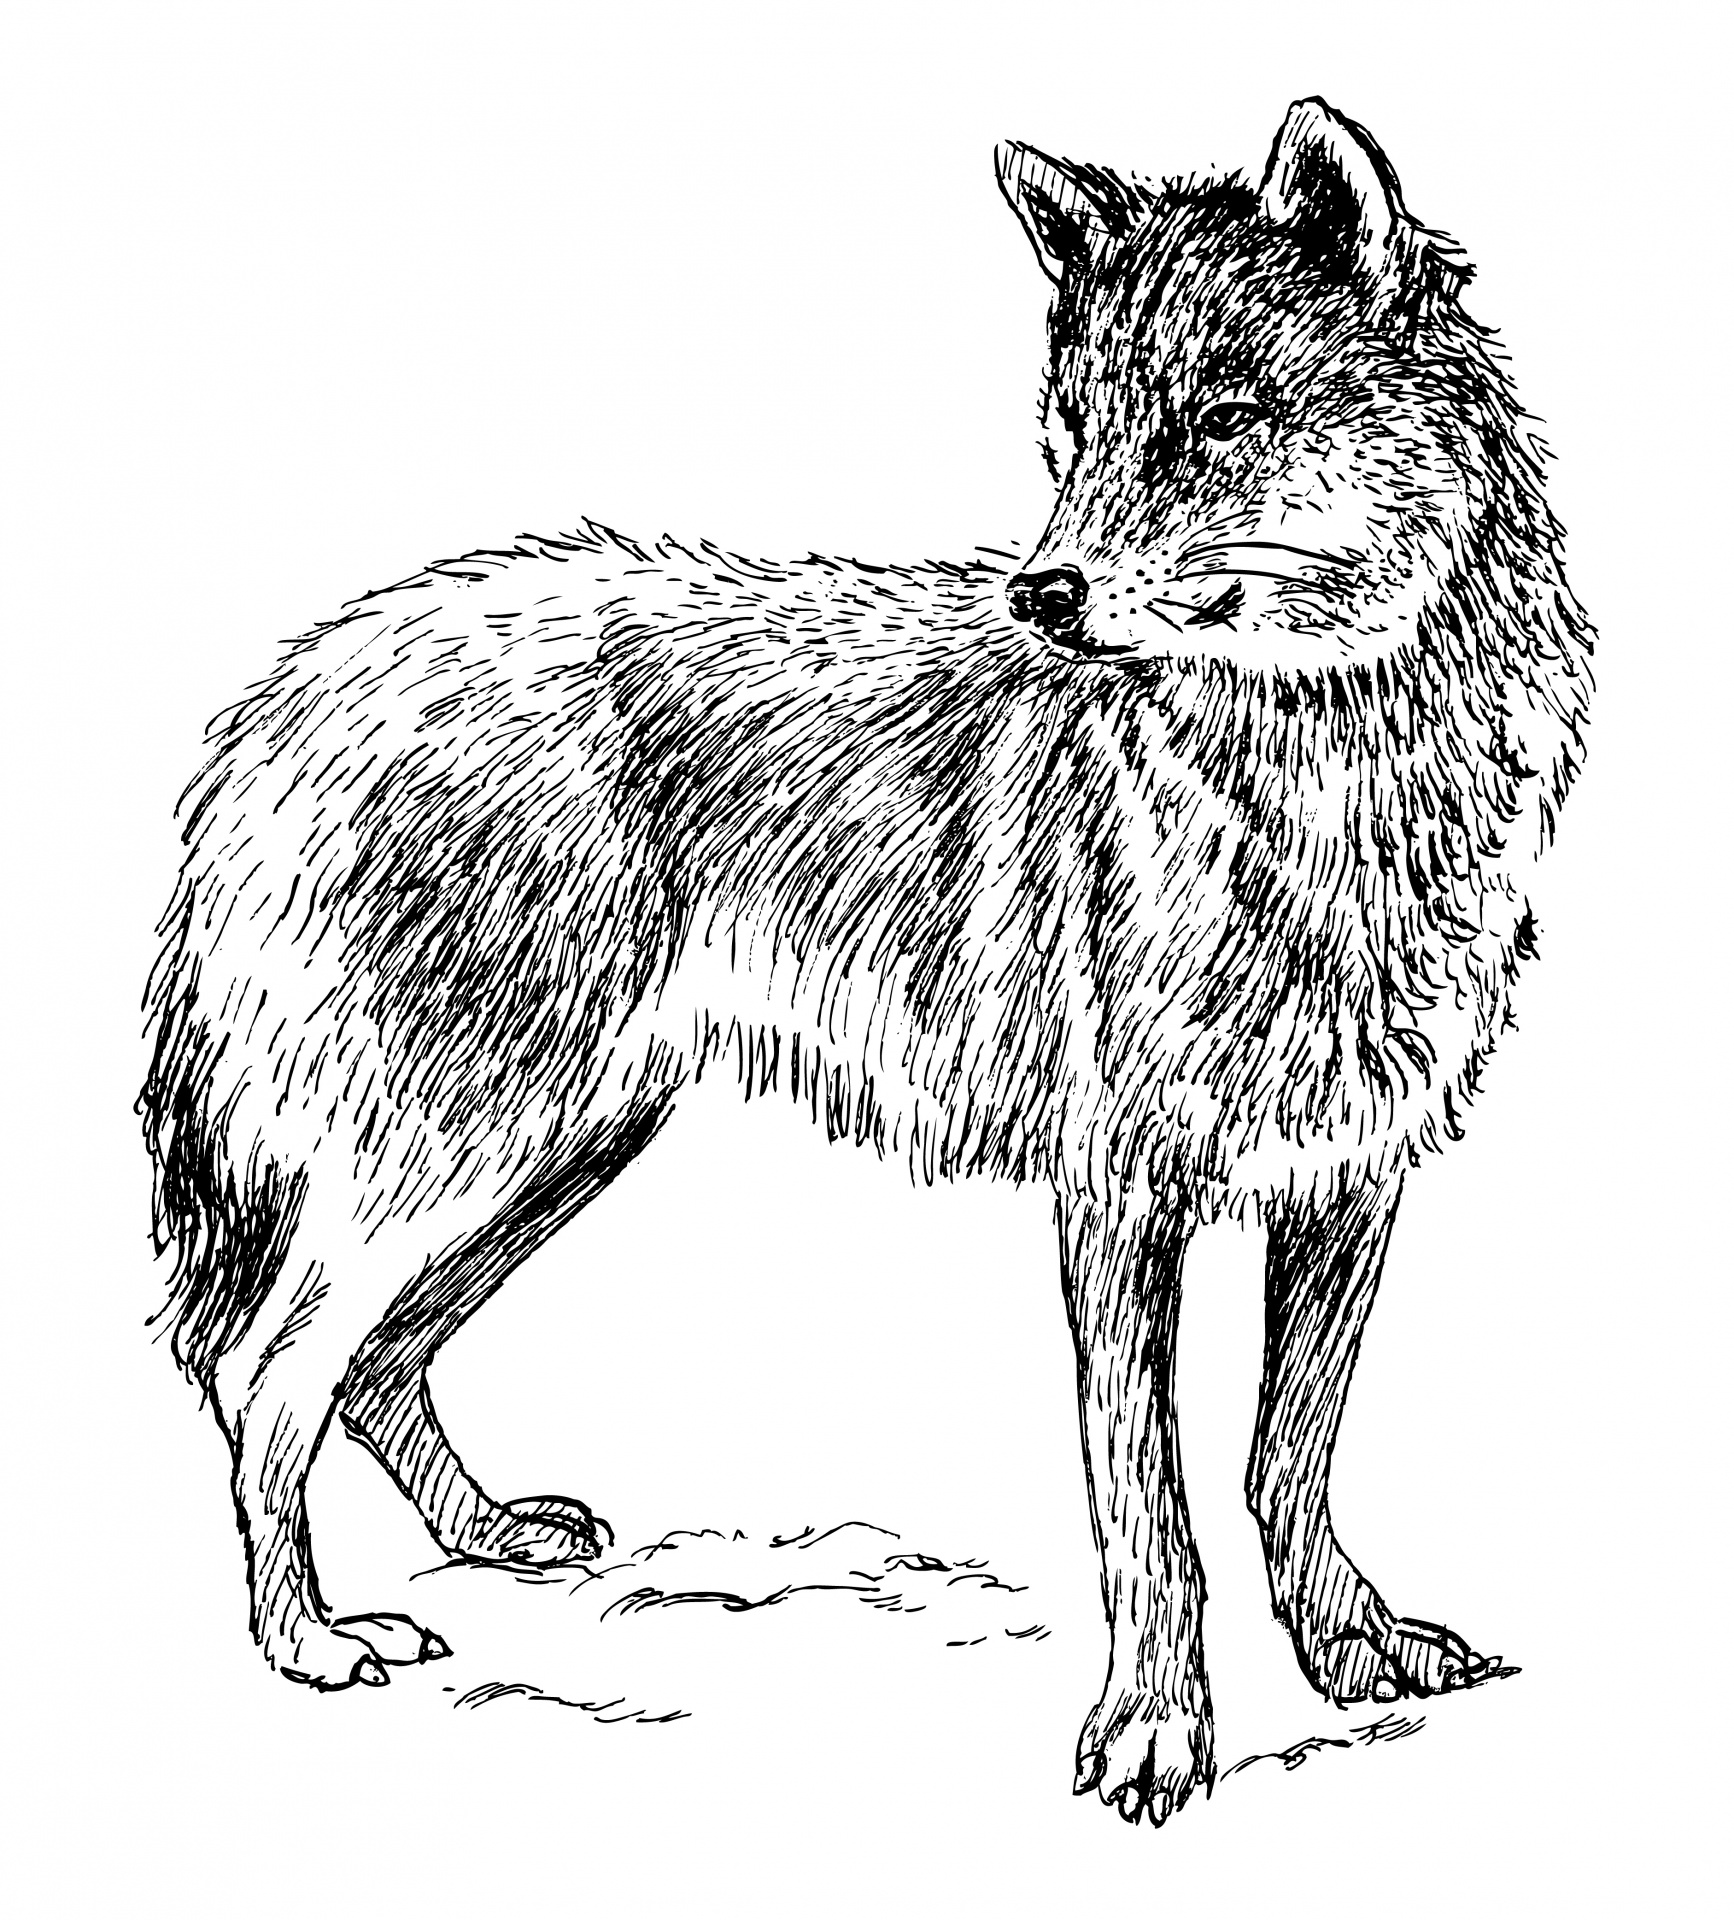 Wolf illustration free stock. Wolves clipart public domain